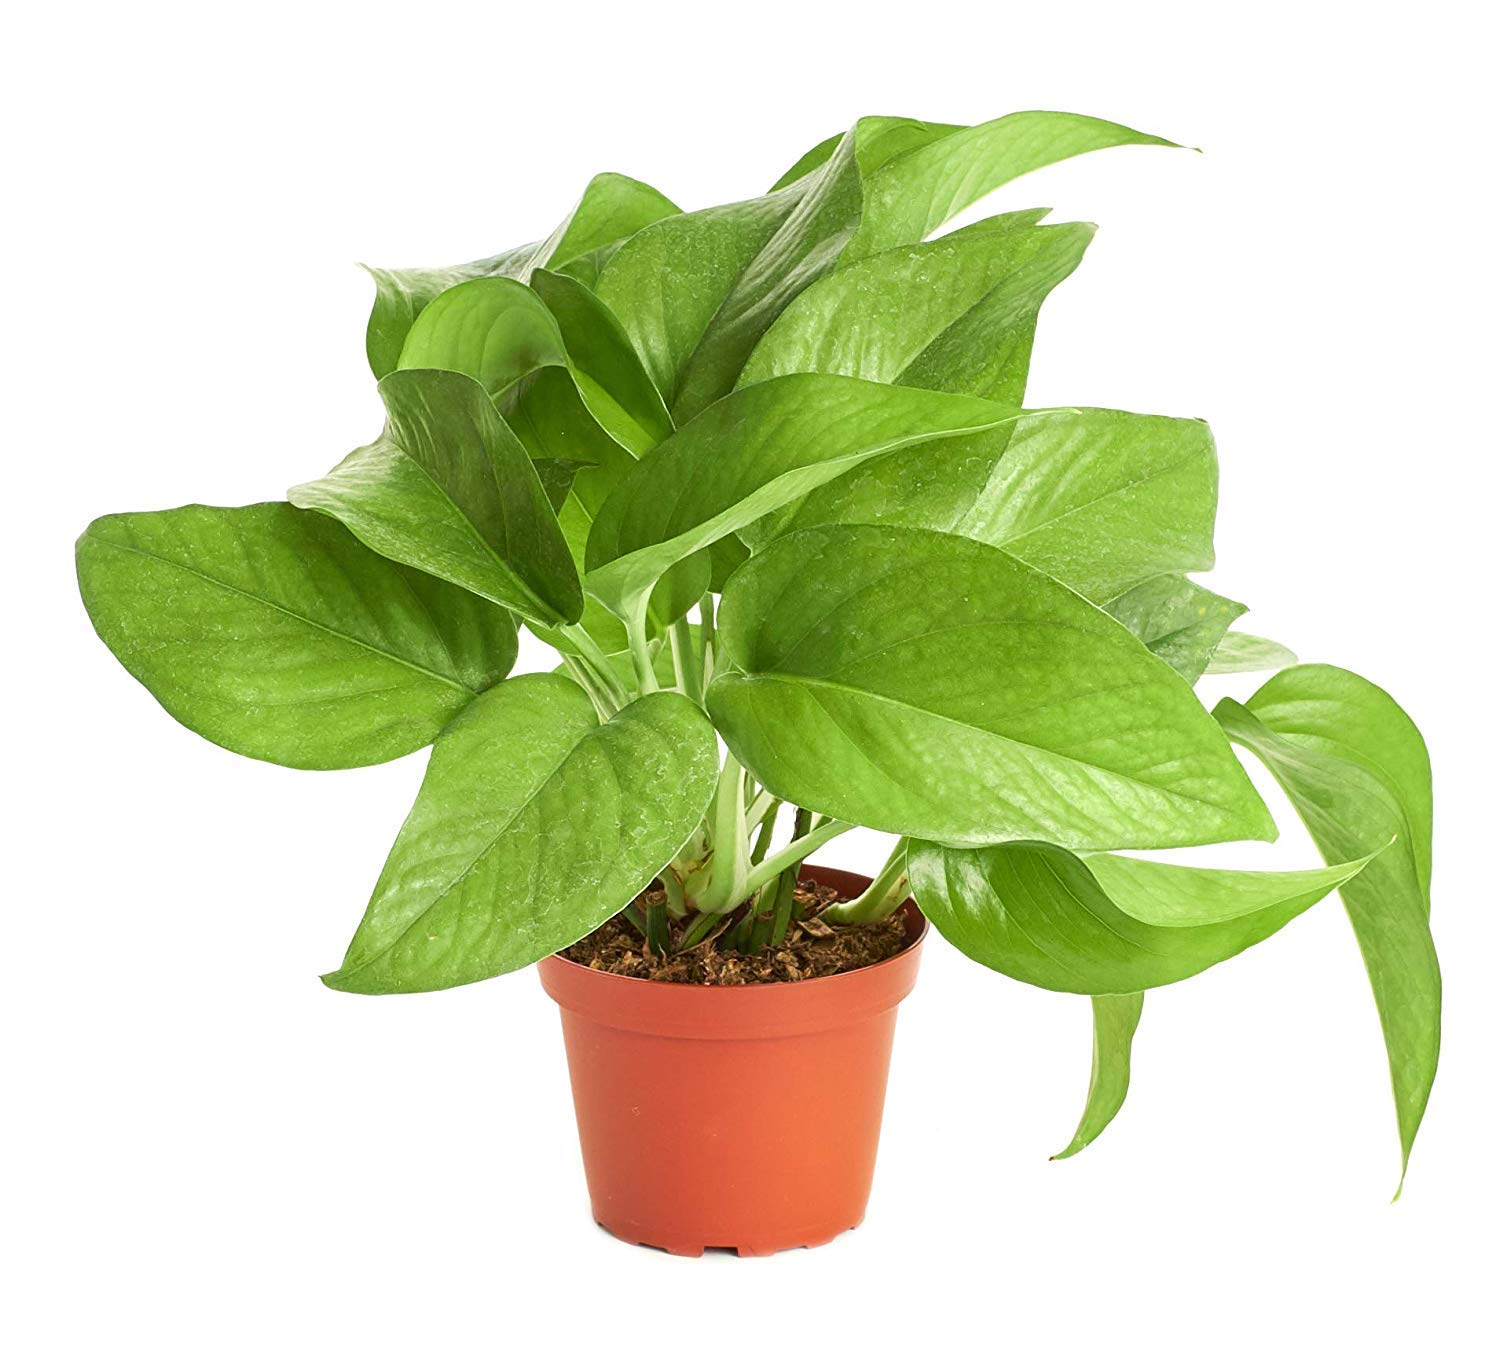 Shop Succulents | Naturally Air Purifying, Easy Care, Live Indoor House Plant in 4'' Grow Pot, 4'' Grower, | Pothos 'Devil's Ivy' by Shop Succulents